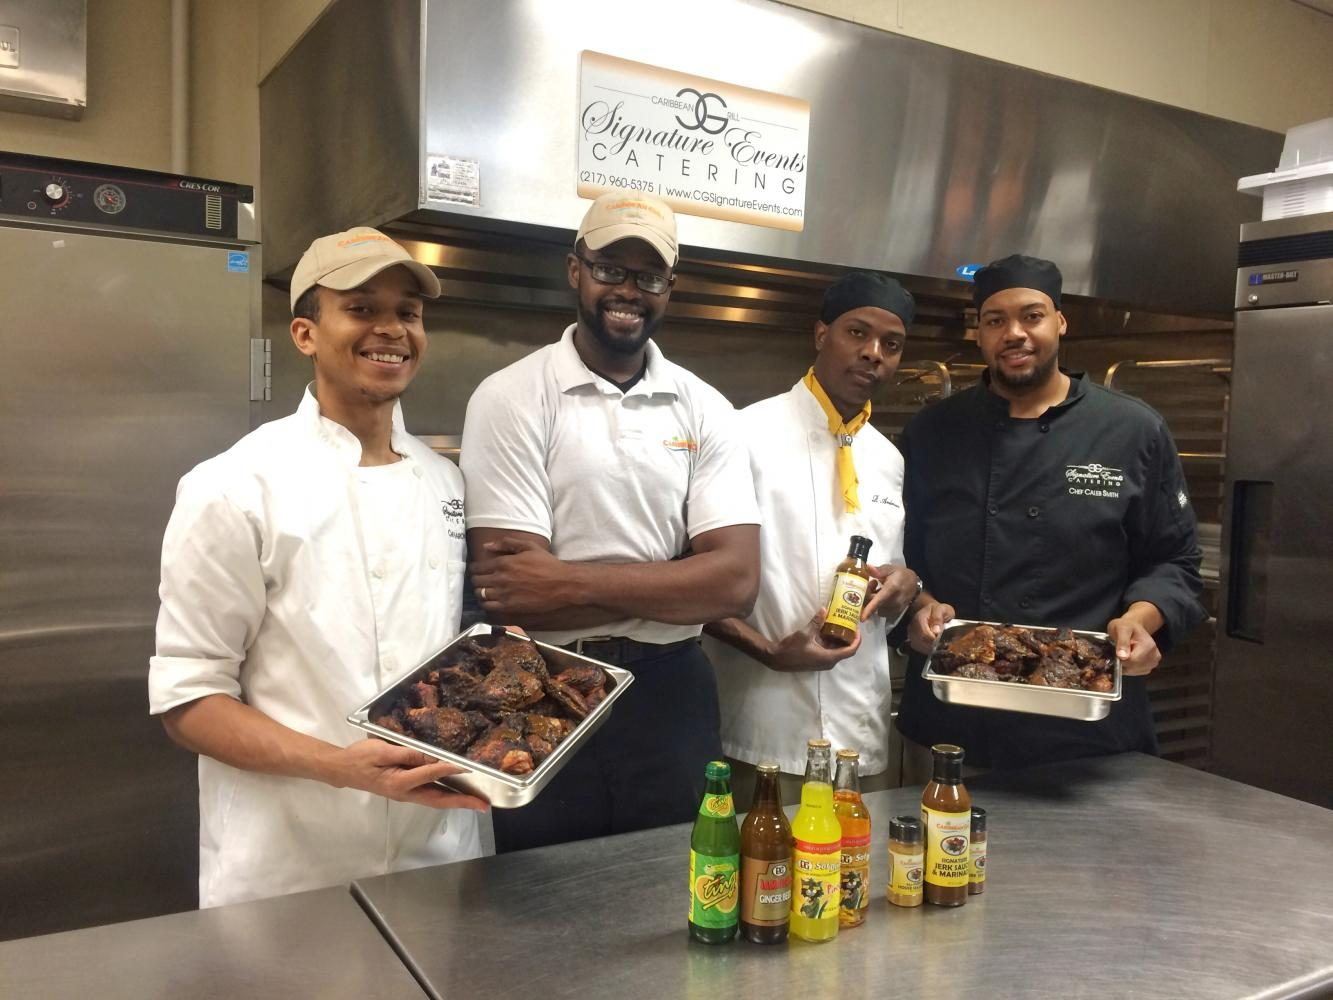 Caribbean+Grill+executive+chef+and+owner+Mike+Harden+and+his+culinary+team+prepare+for+their+first+permanent+restaurant+location%2C+which+is+set+to+open+Tuesday%2C+May+30+at+2135+S+Neil+St.%2C+Champaign.+Caribbean+Grill+is+currently+operating+out+of+a+food+truck+and+a+catering+location.++